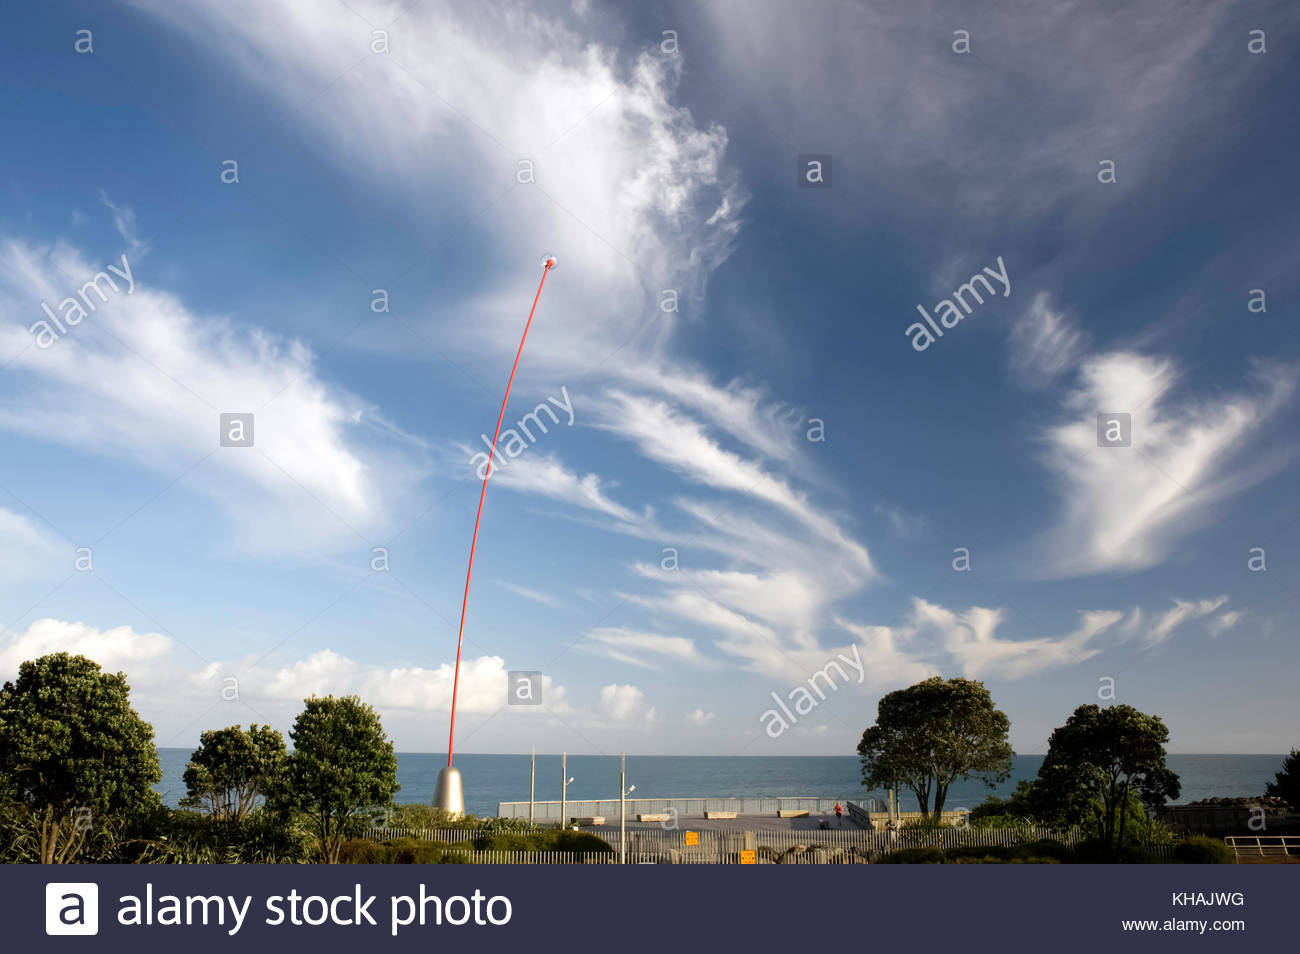 Kiwiana High Resolution Stock Photography and Images - Alamy